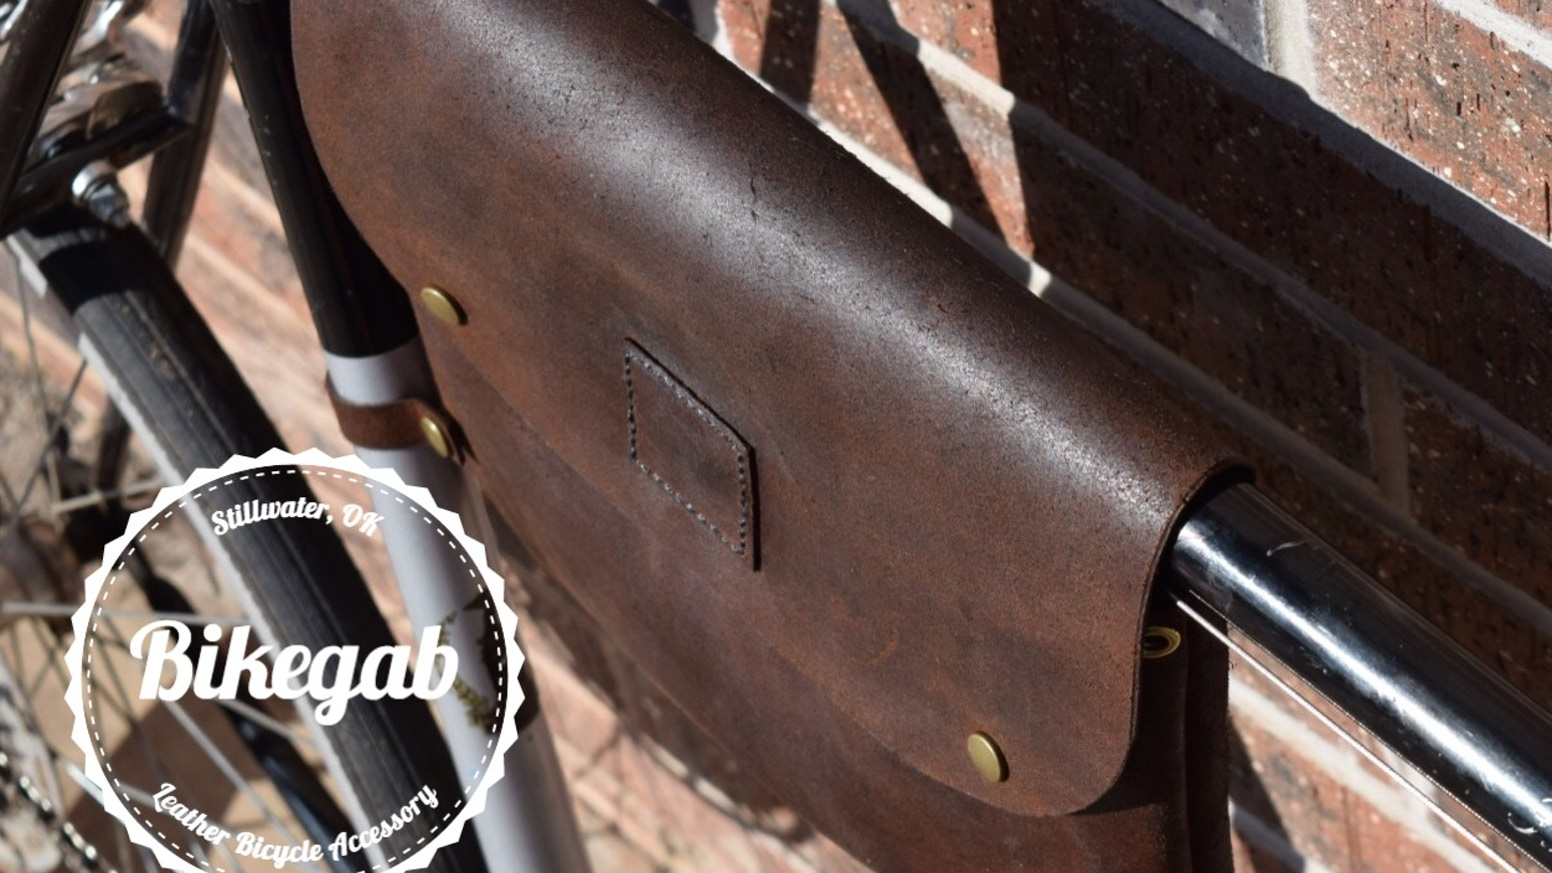 Hand made affordable leather bicycle frame bag that gives your bike a nice fashionable touch and can be used as a crossbody bag!